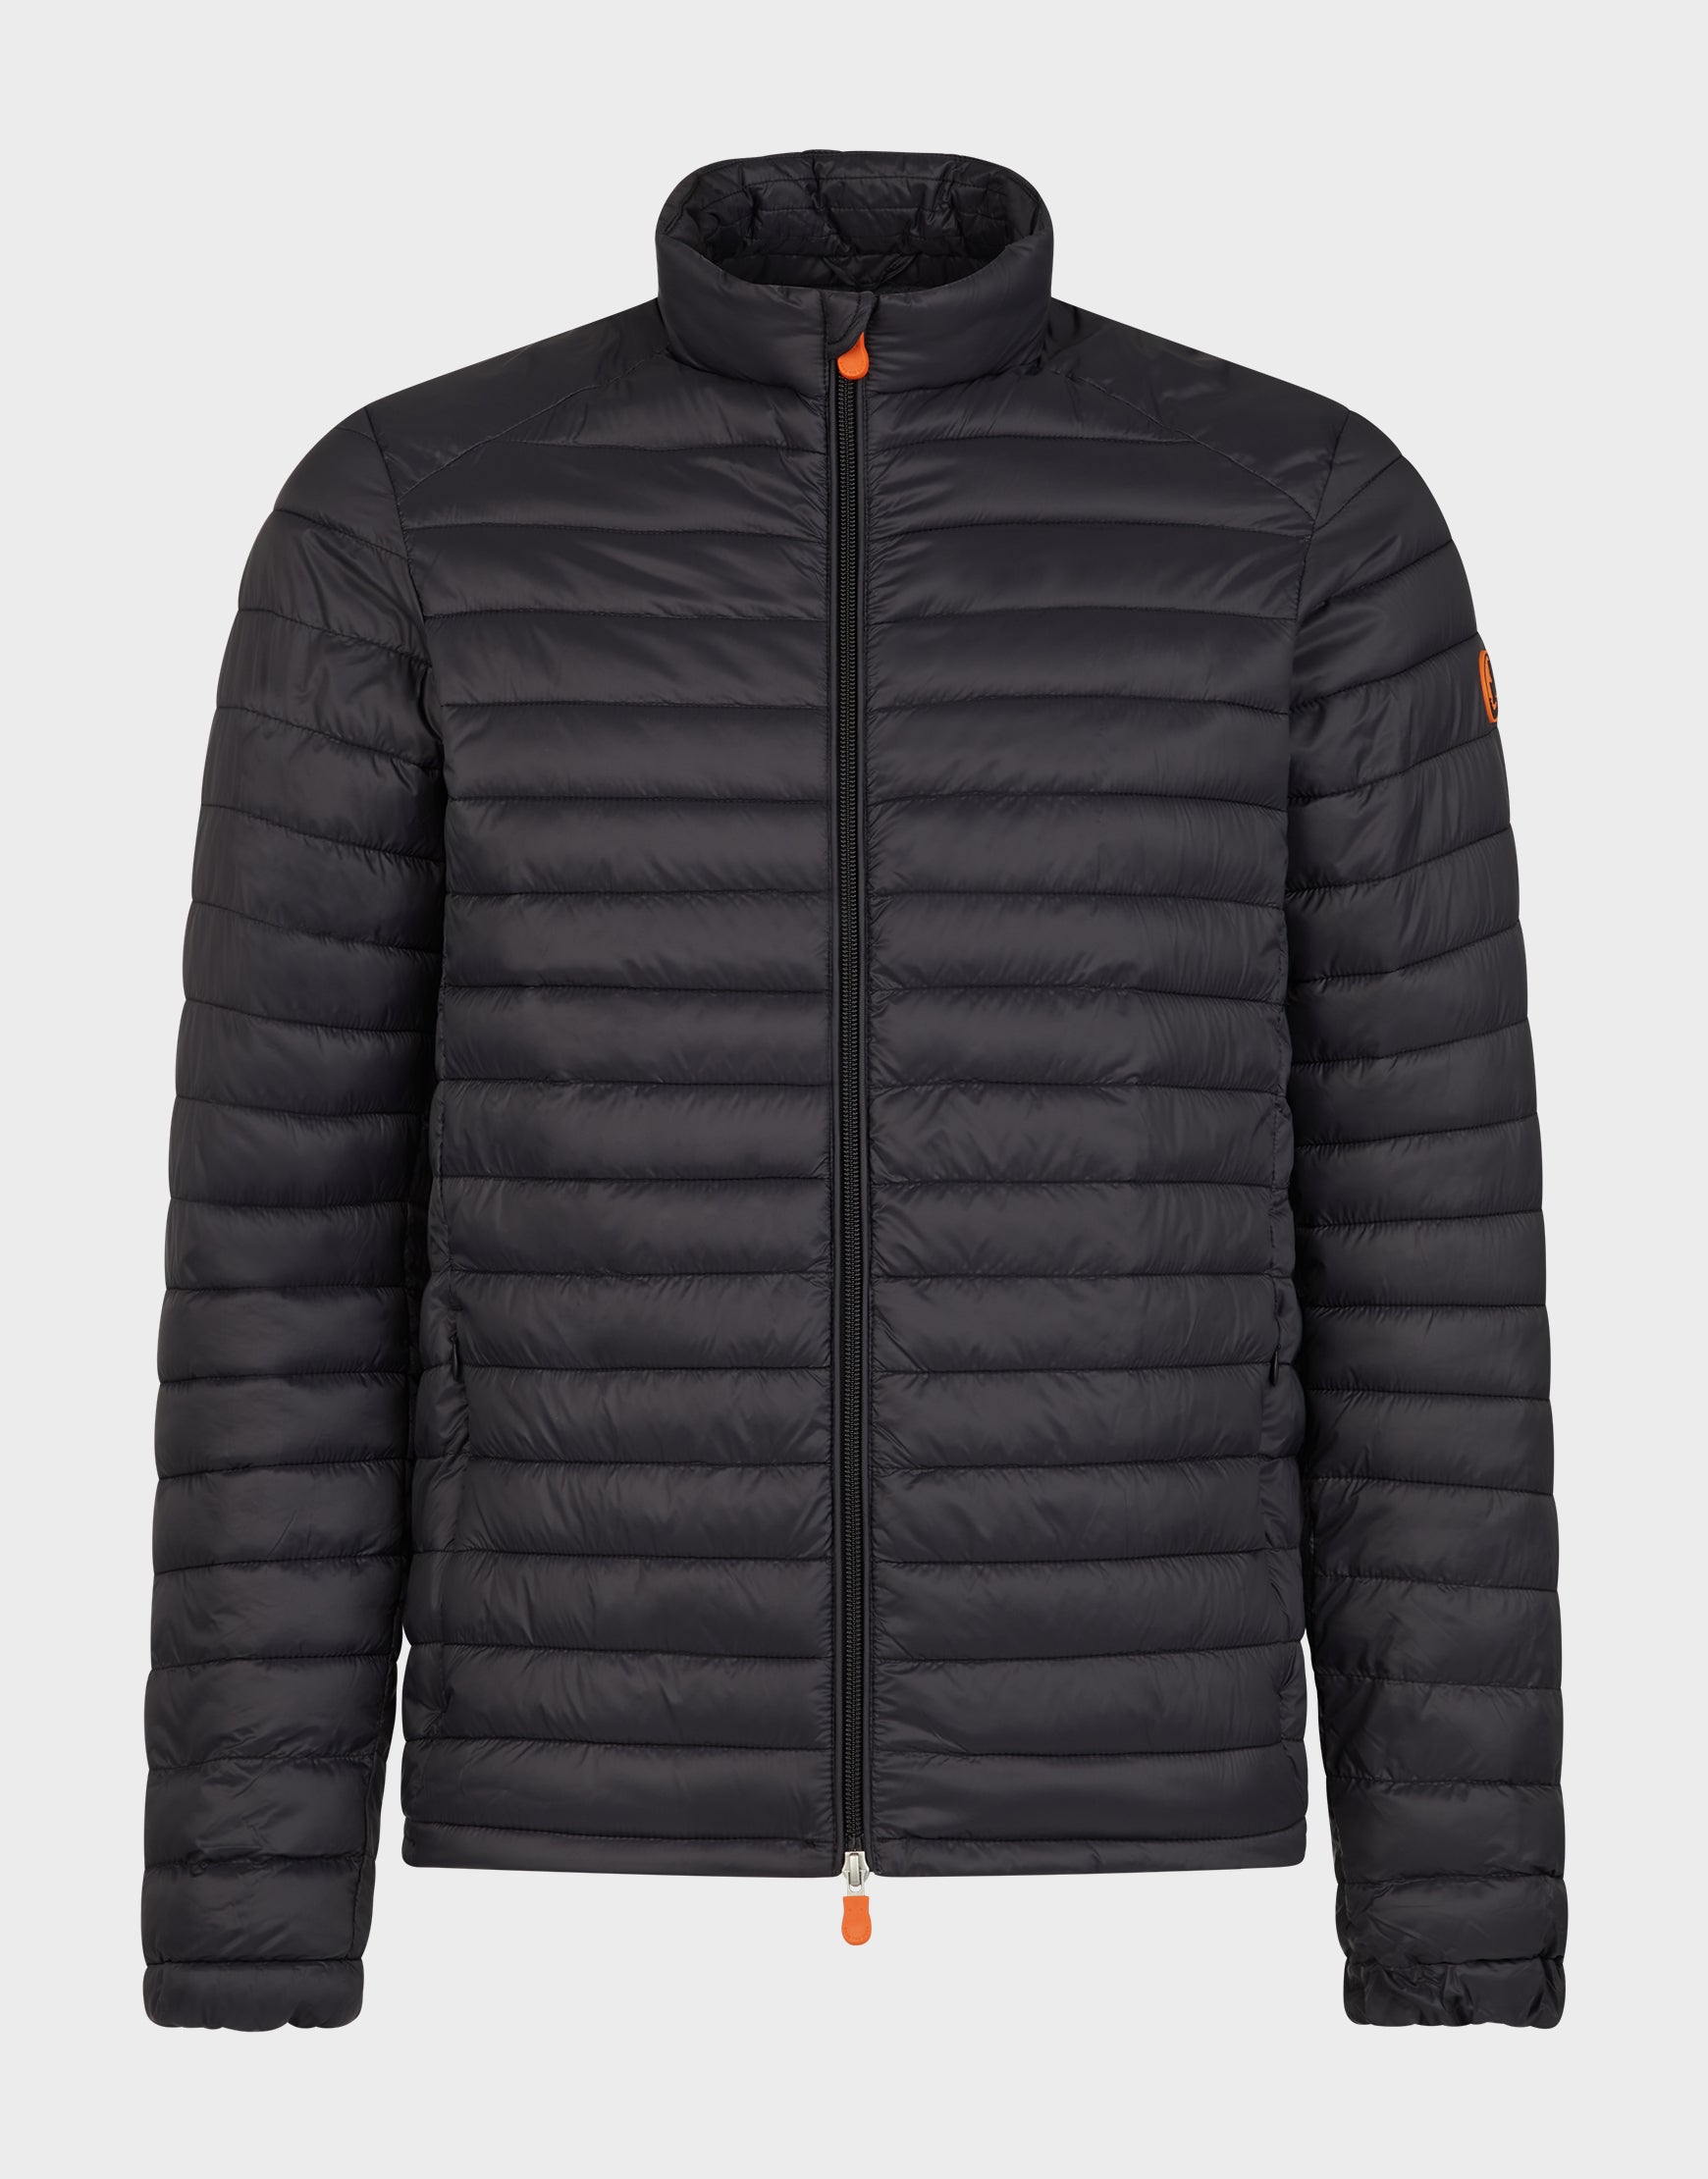 2a143cbbd89c Save The Duck Mens Jacket - Save the Duck